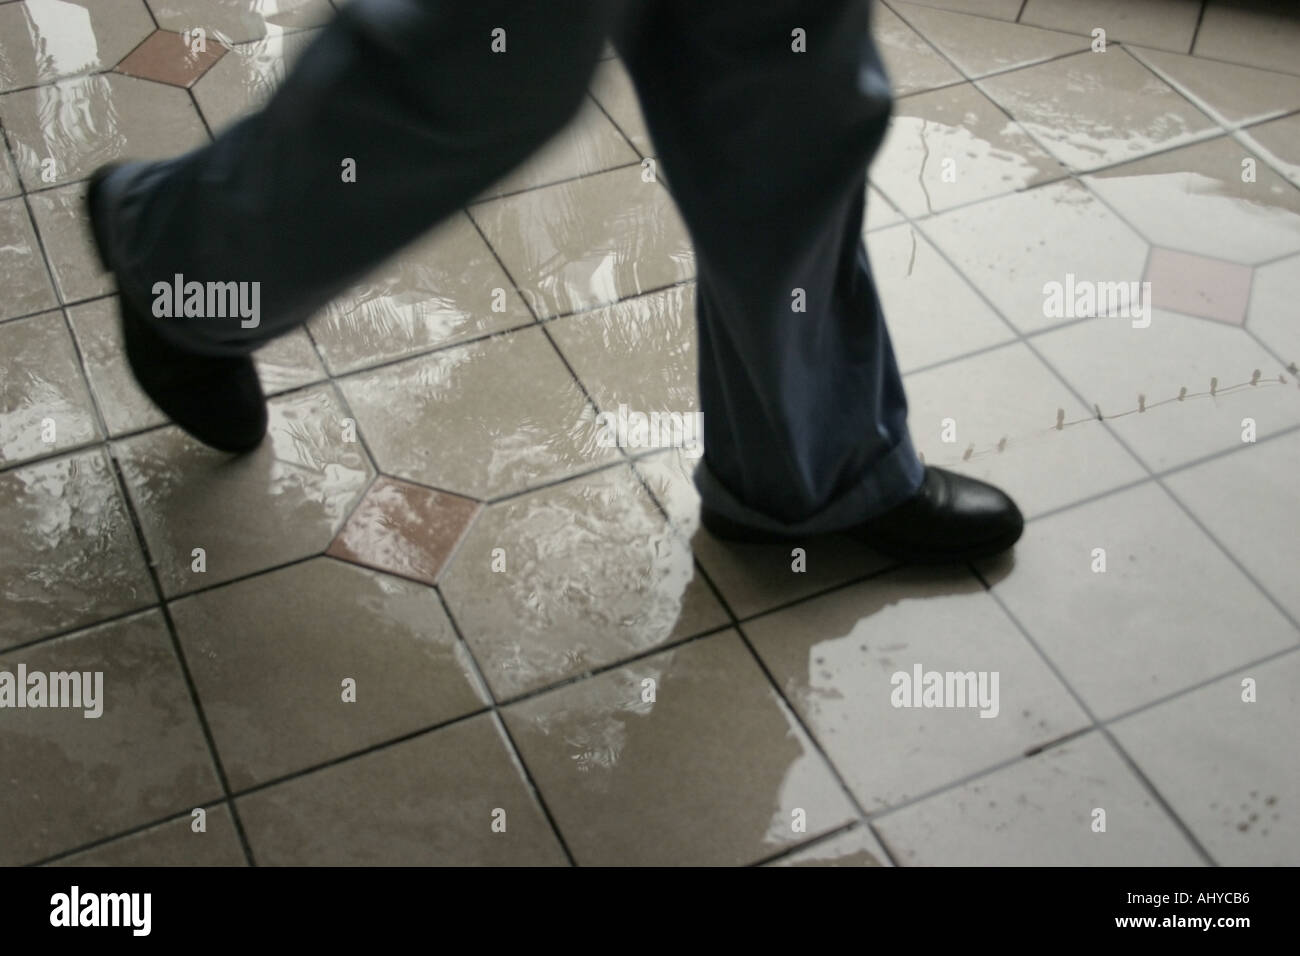 a pair of feet walking on slippery floor wet from rain Wearing blue jeans and black shoes Slight motion blur - Stock Image